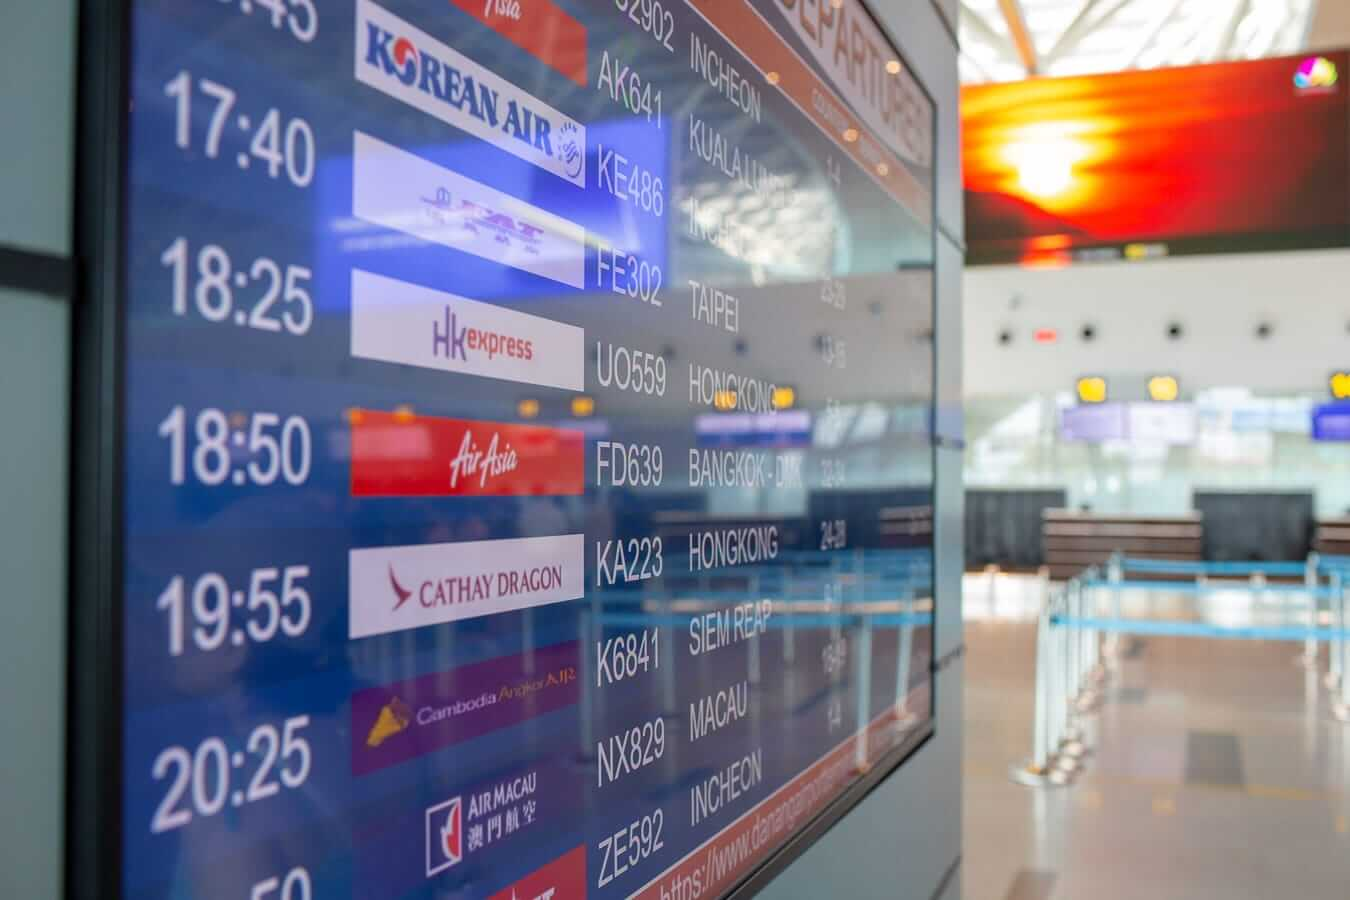 Departure boards at the Da Nang airport